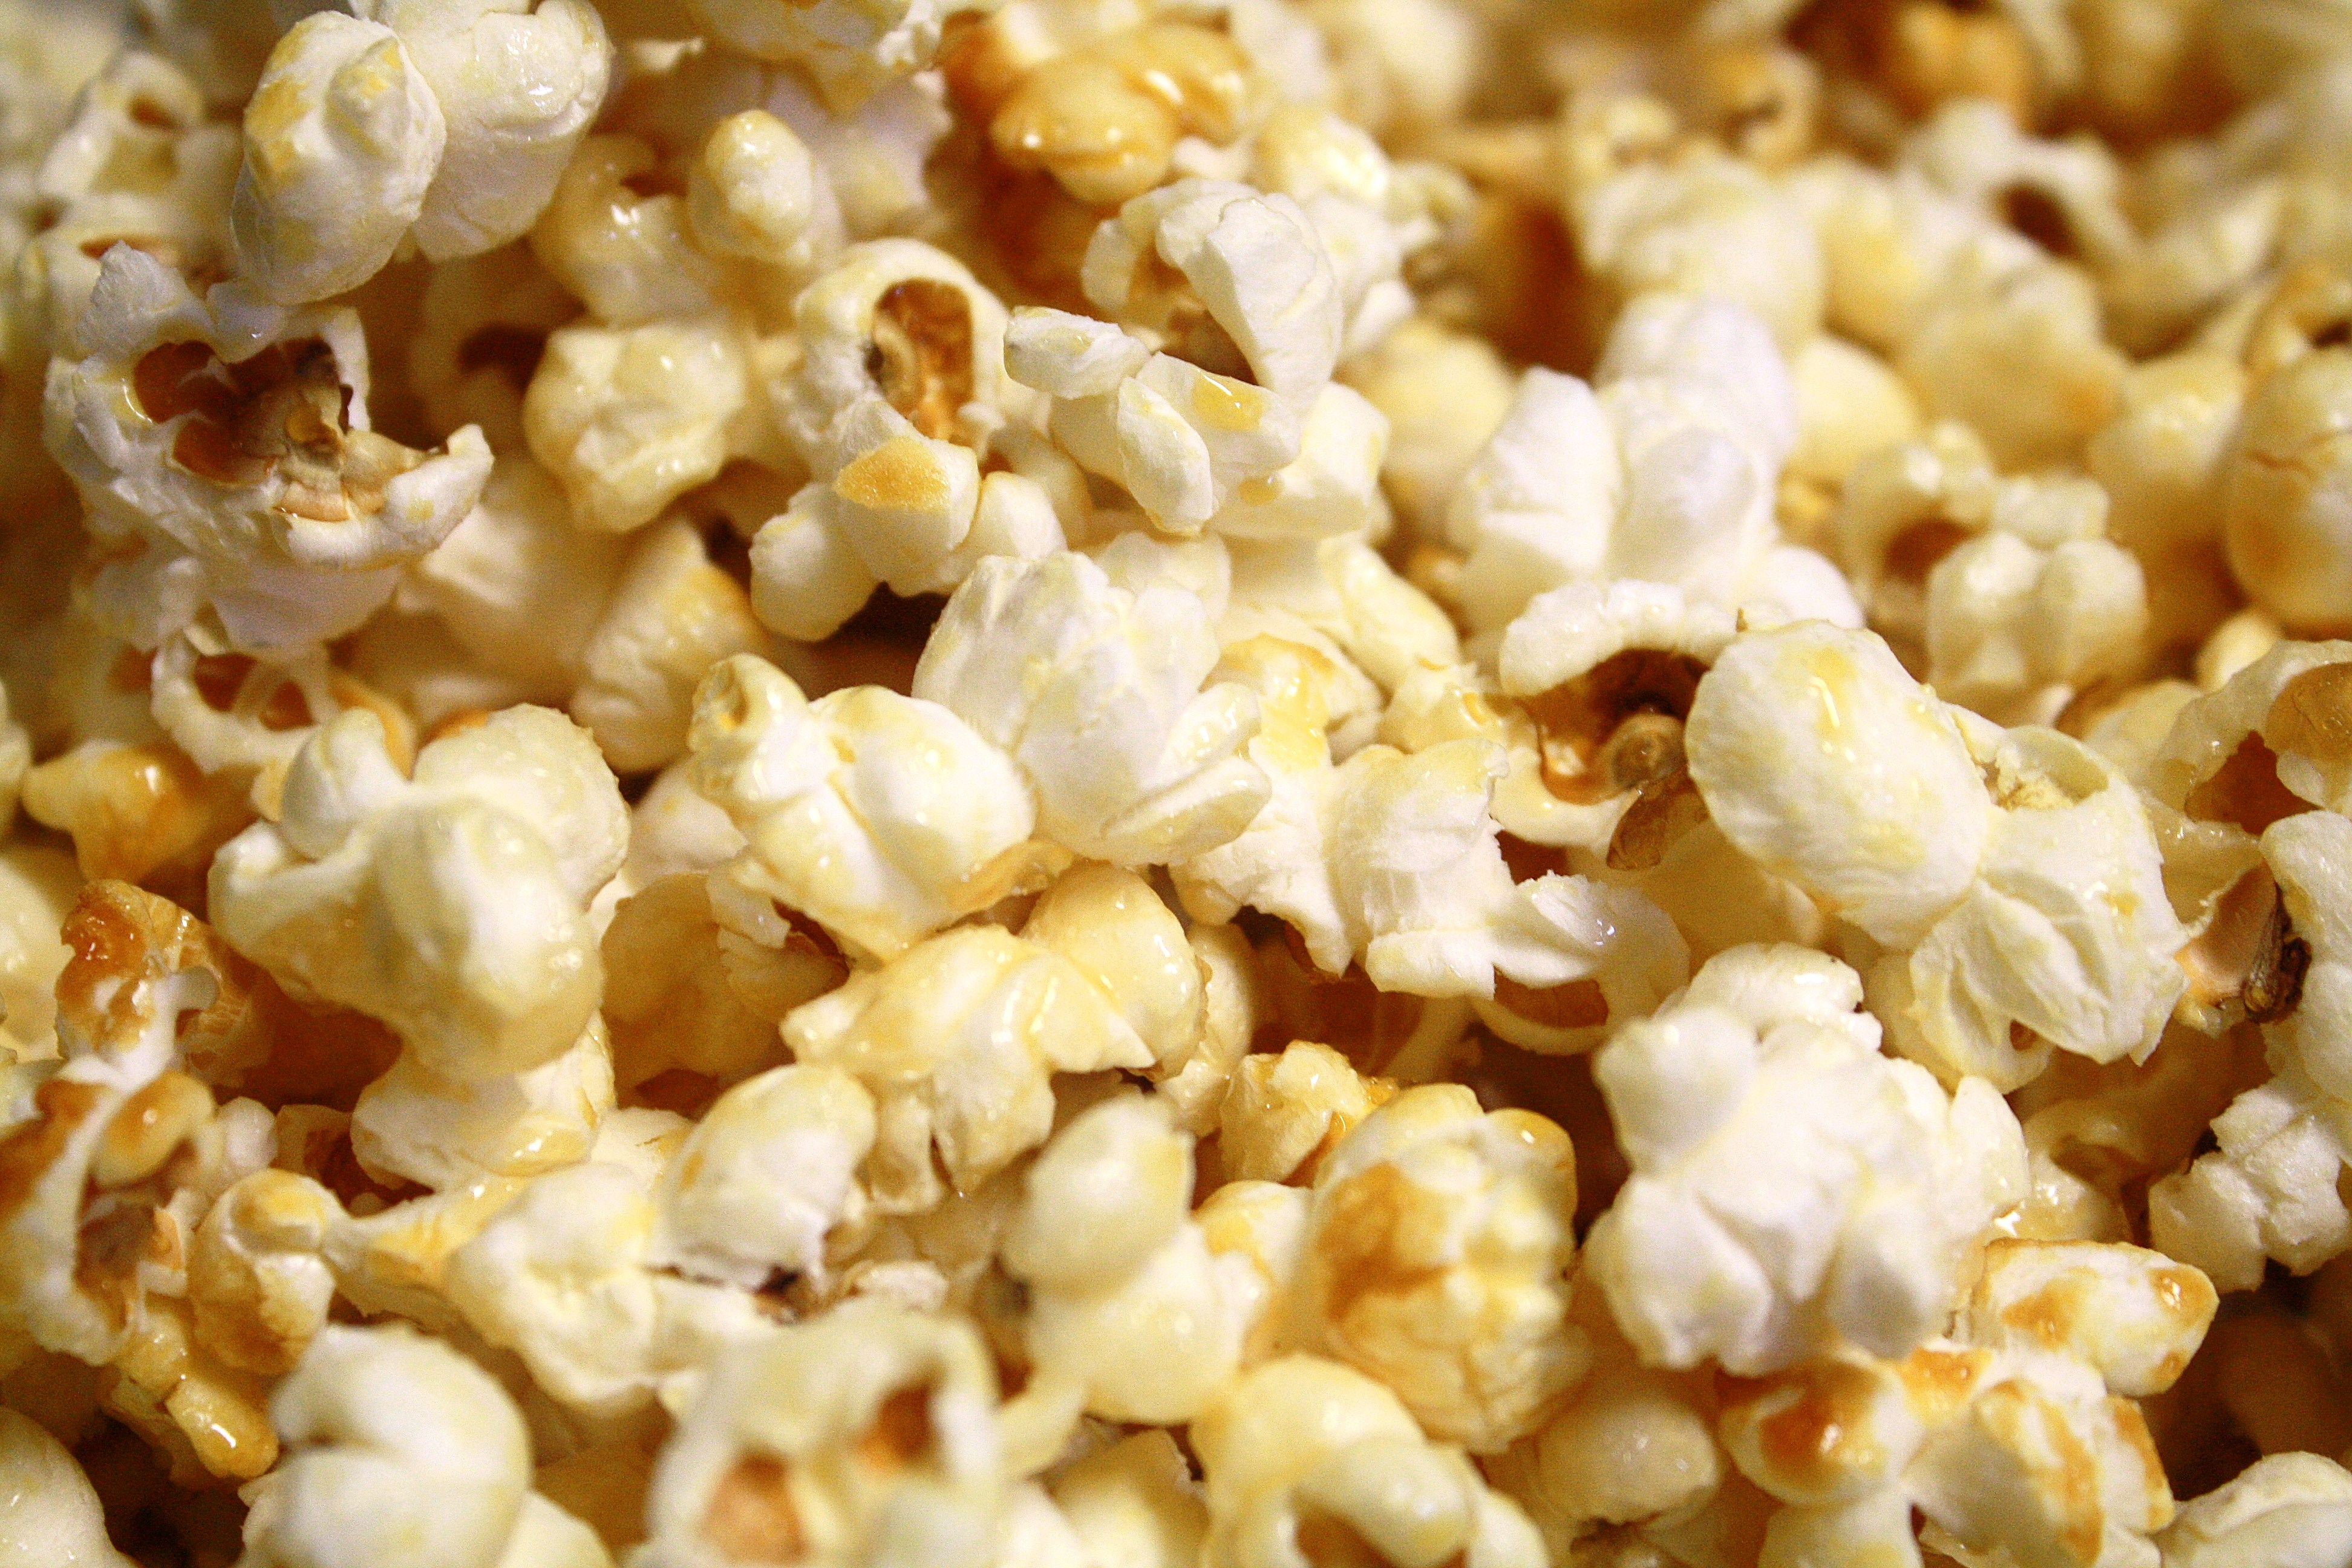 Homemade Kettle Corn – The Cooper Family